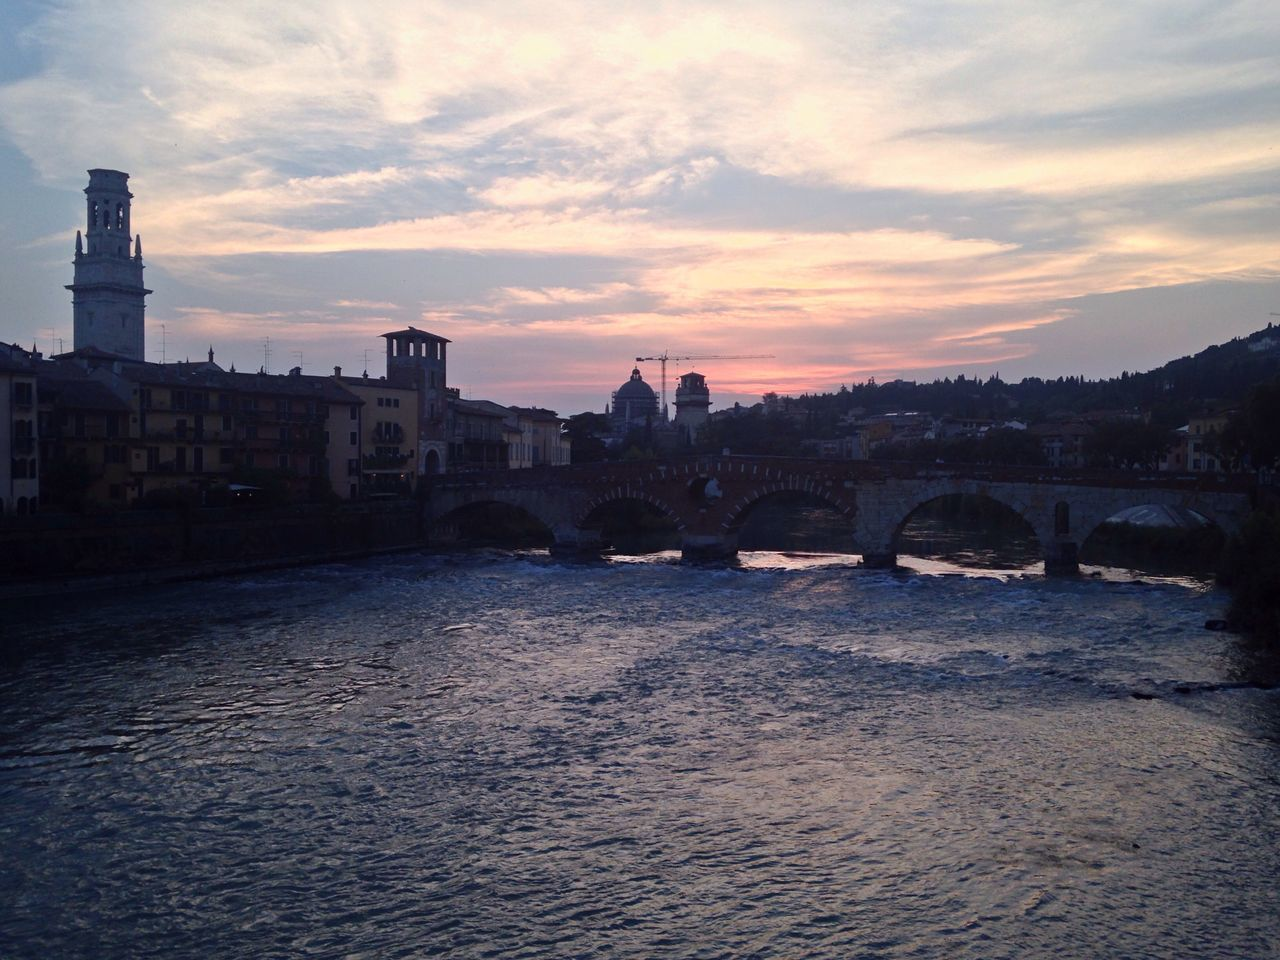 165/365 June 14  One Year Project 2017 Verona Italy Bridge - Man Made Structure Adige River Veneto Italy Ponte Pietra Verona Sunset Architecture Water Built Structure River Sky Cloud - Sky Waterfront Building Exterior Connection Rippled Nature No People Outdoors City Day